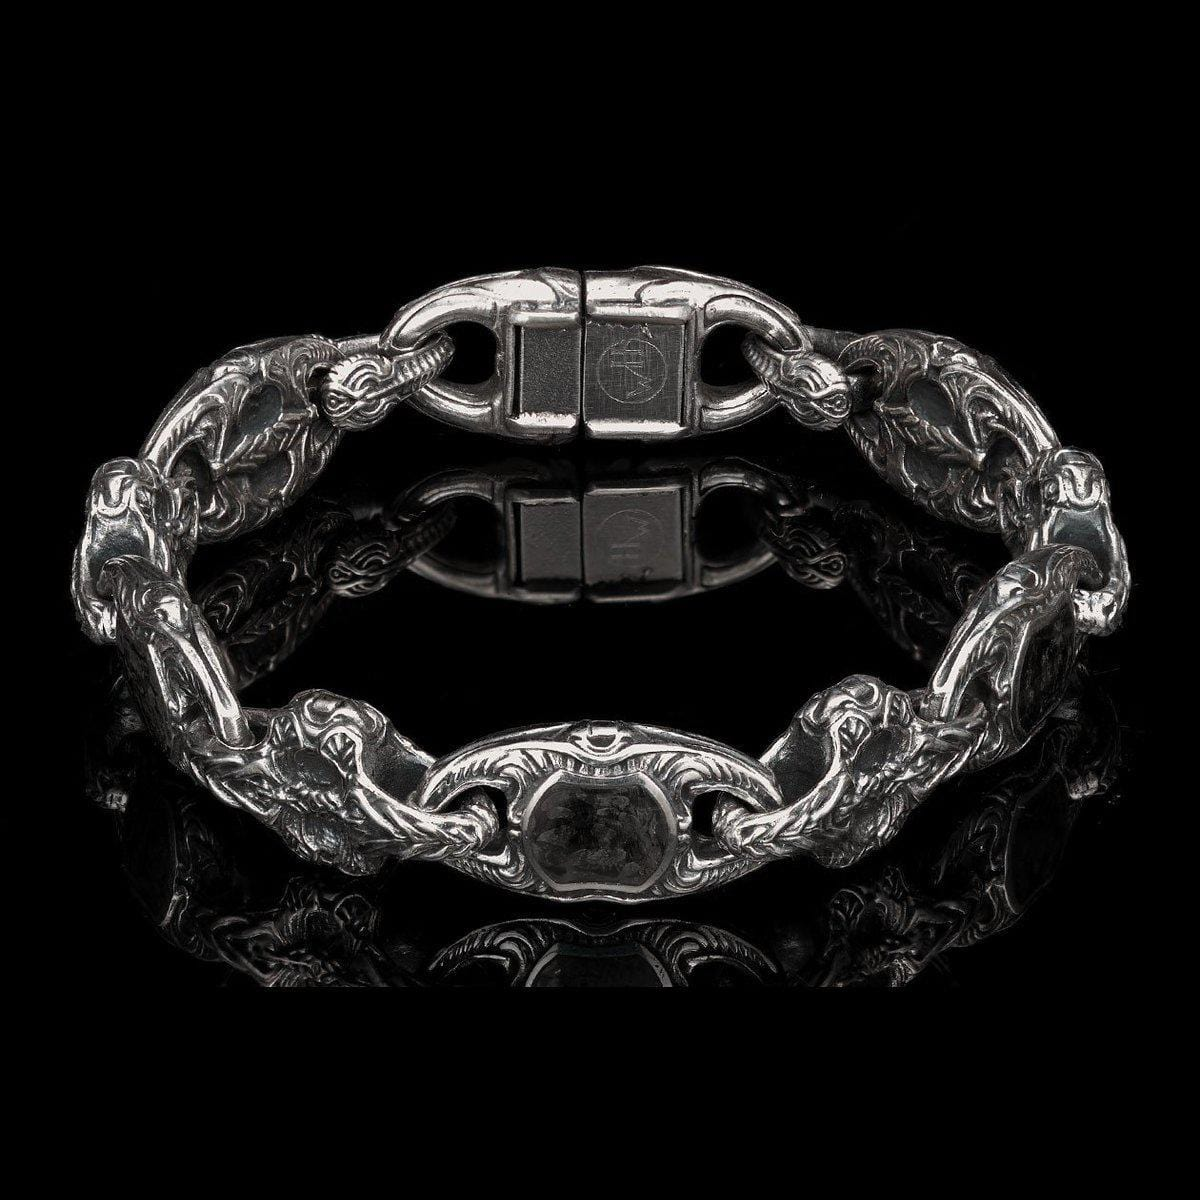 Men's Noir Bracelet - BR3 CF-William Henry-Renee Taylor Gallery